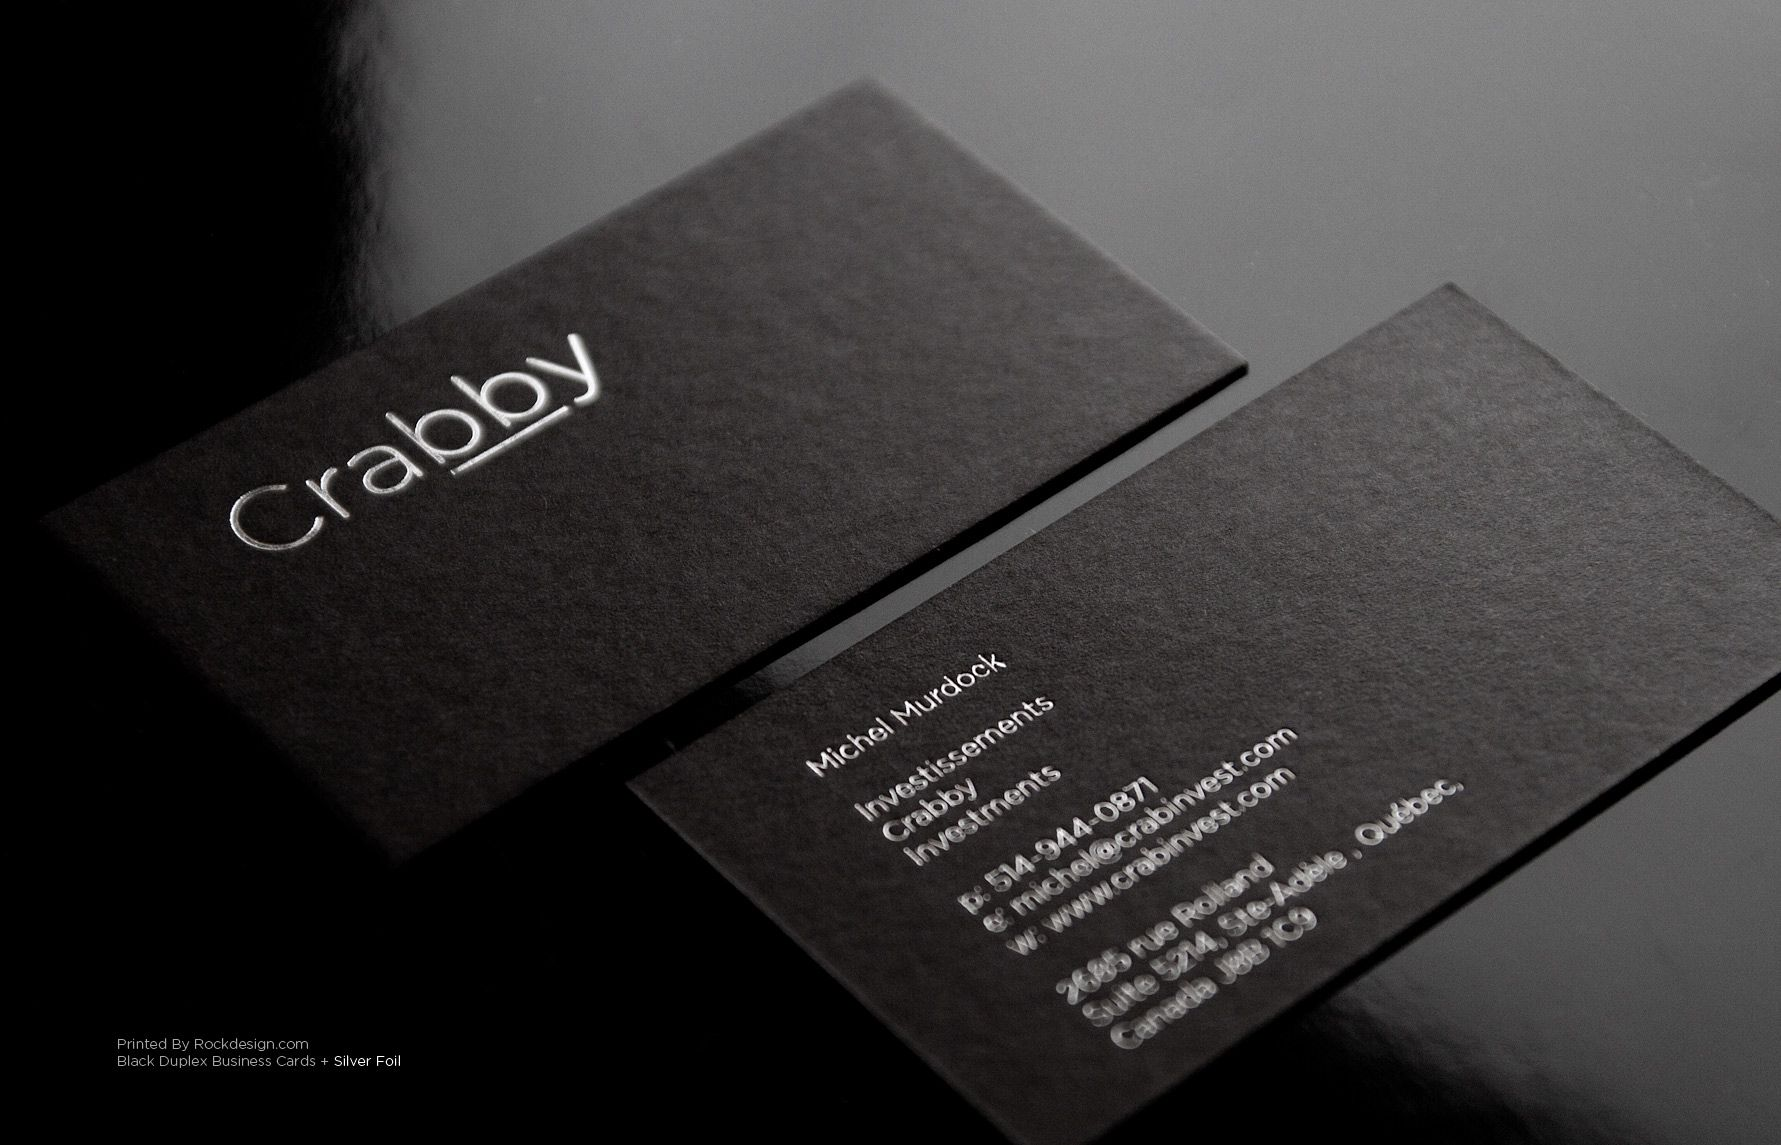 Rockdesign High End Business Cards Black